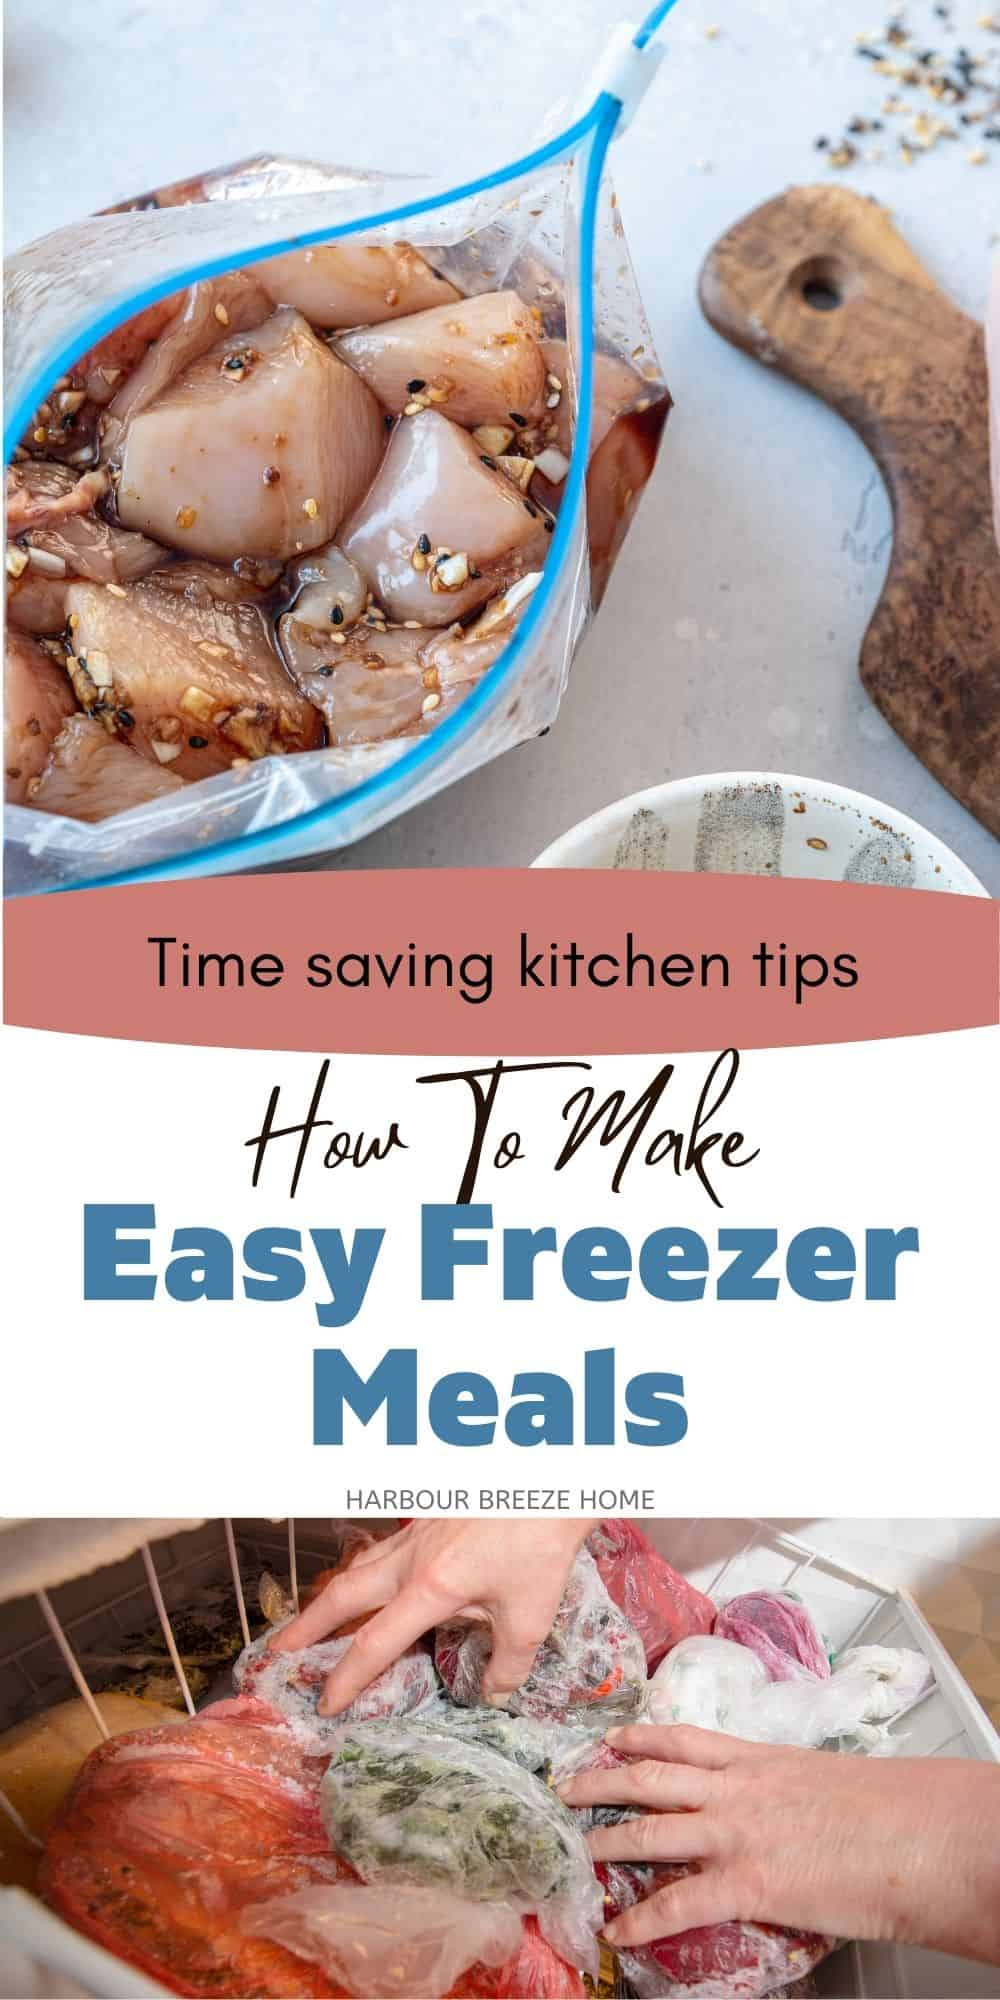 How to prepare, package and store freezer meals using time saving tips.